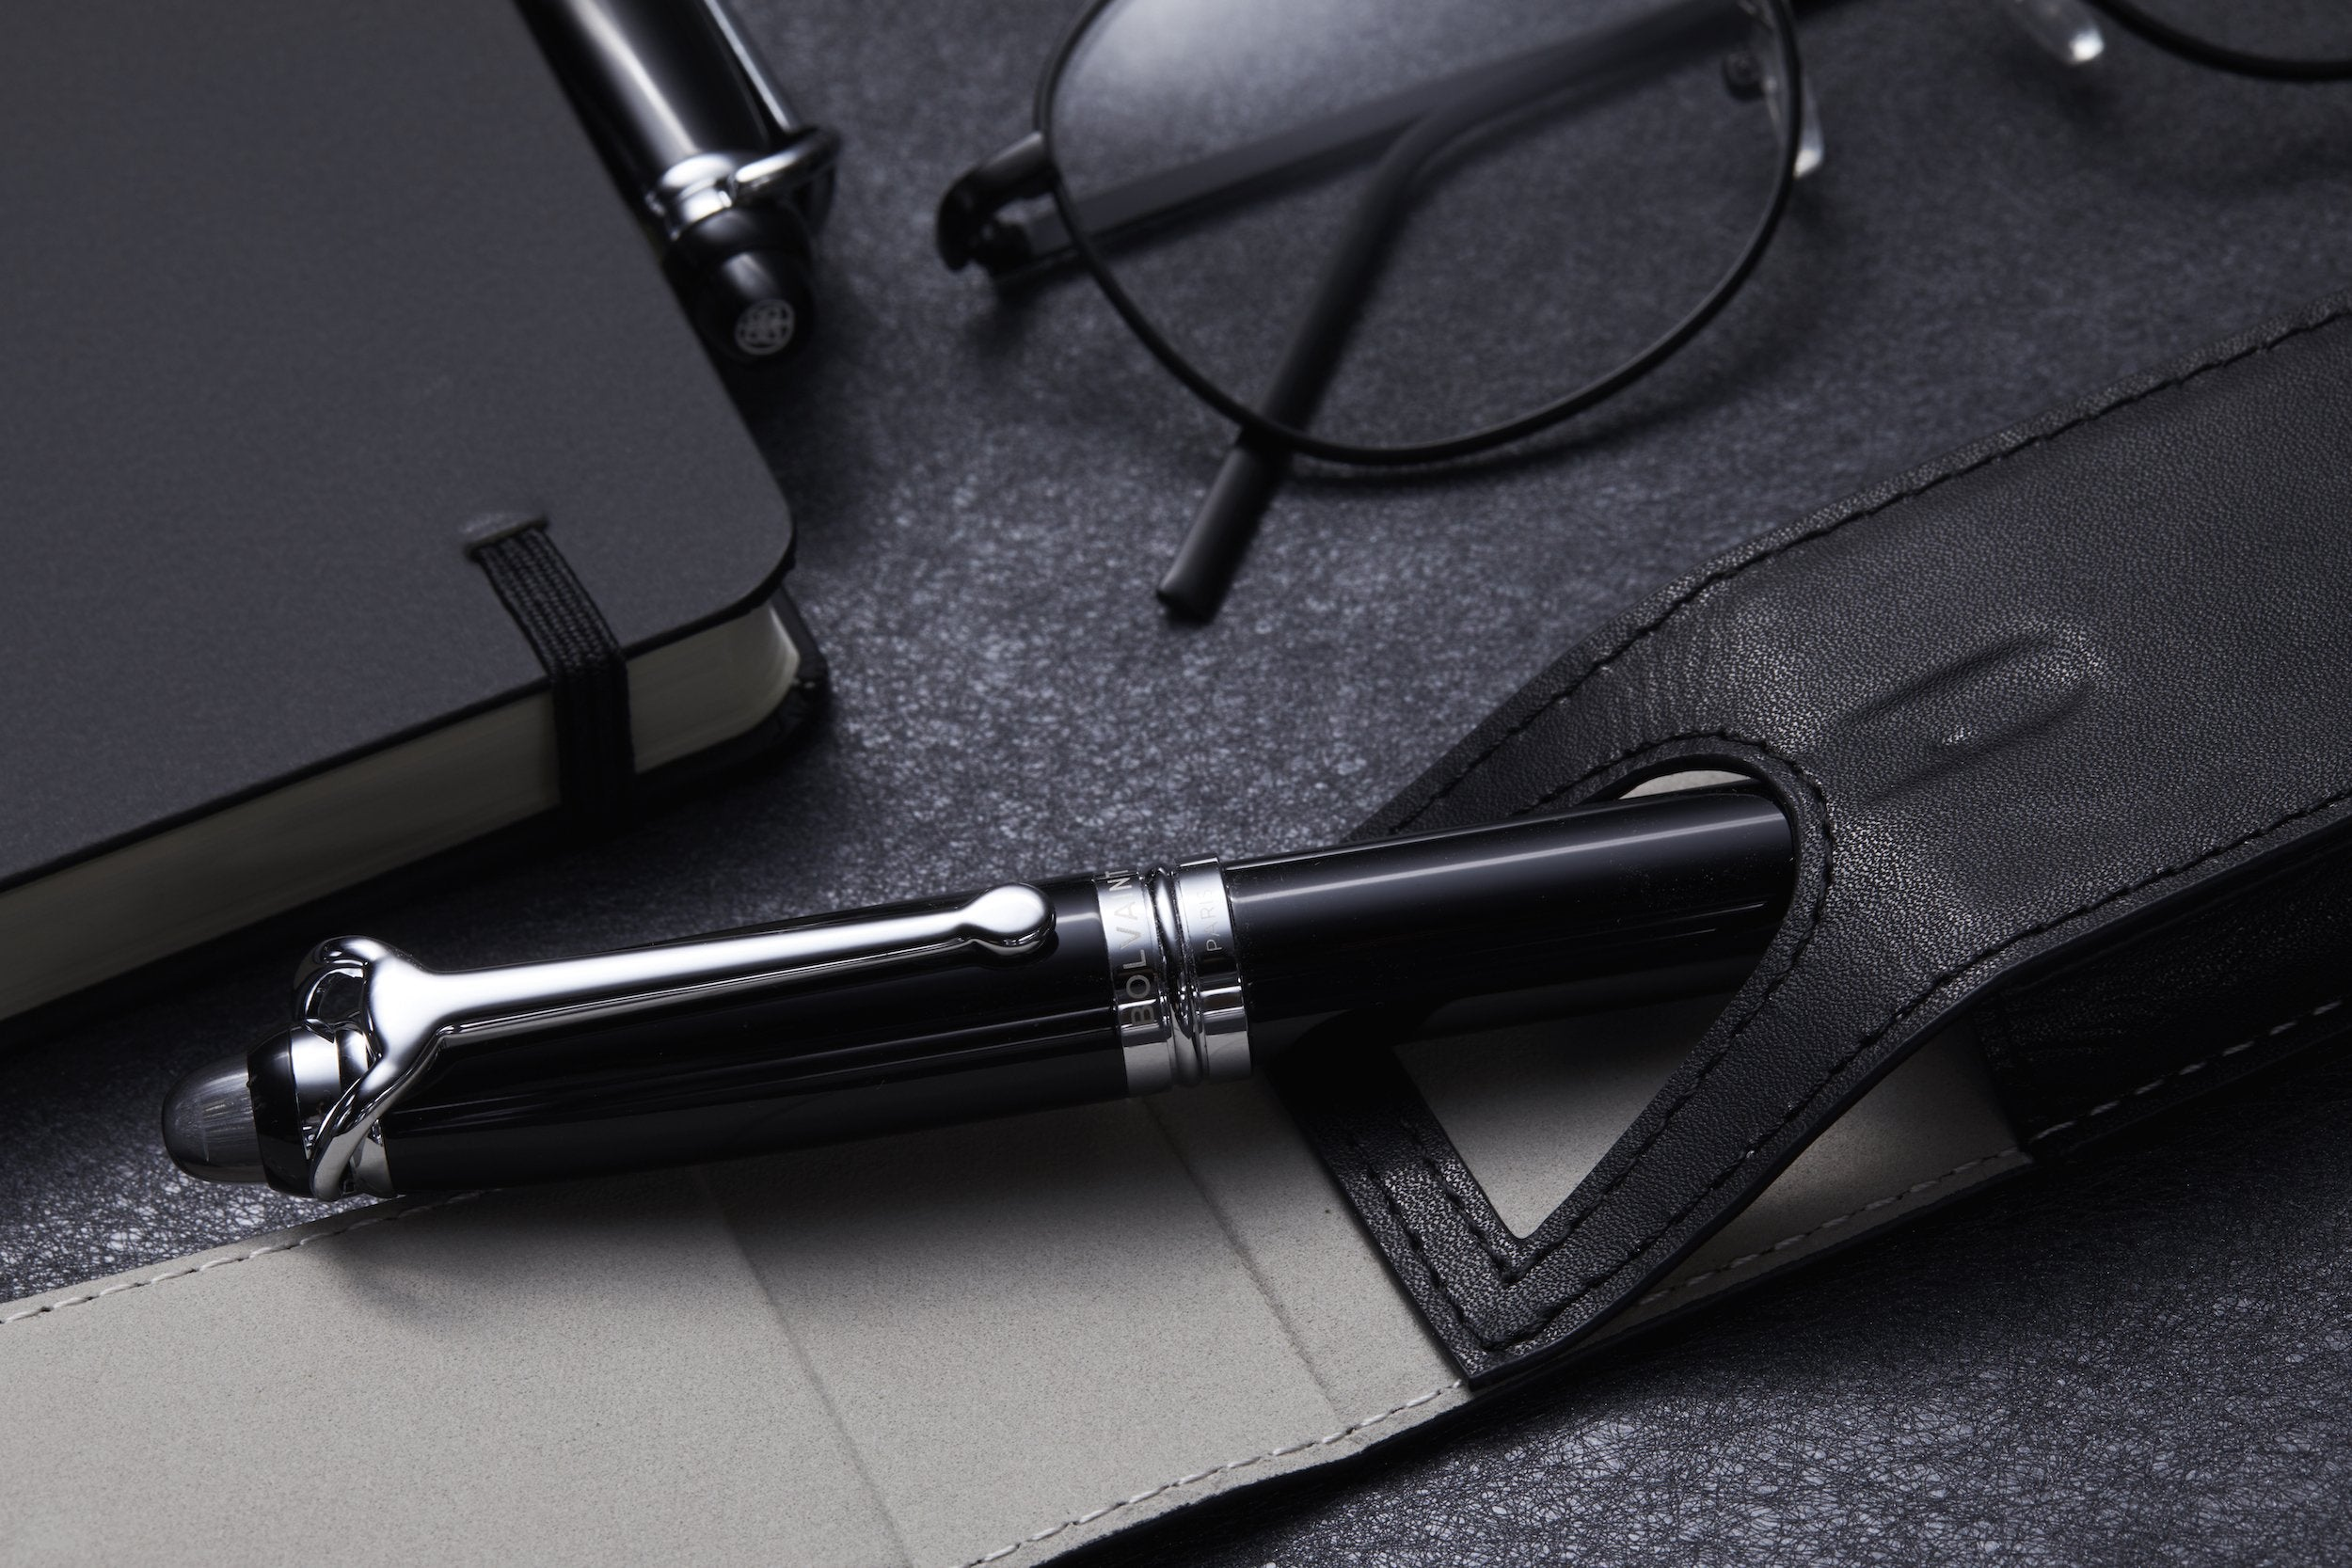 Bolvaint Odyssey Sévigné Pen Set – Onyx Black and Prussian Blue